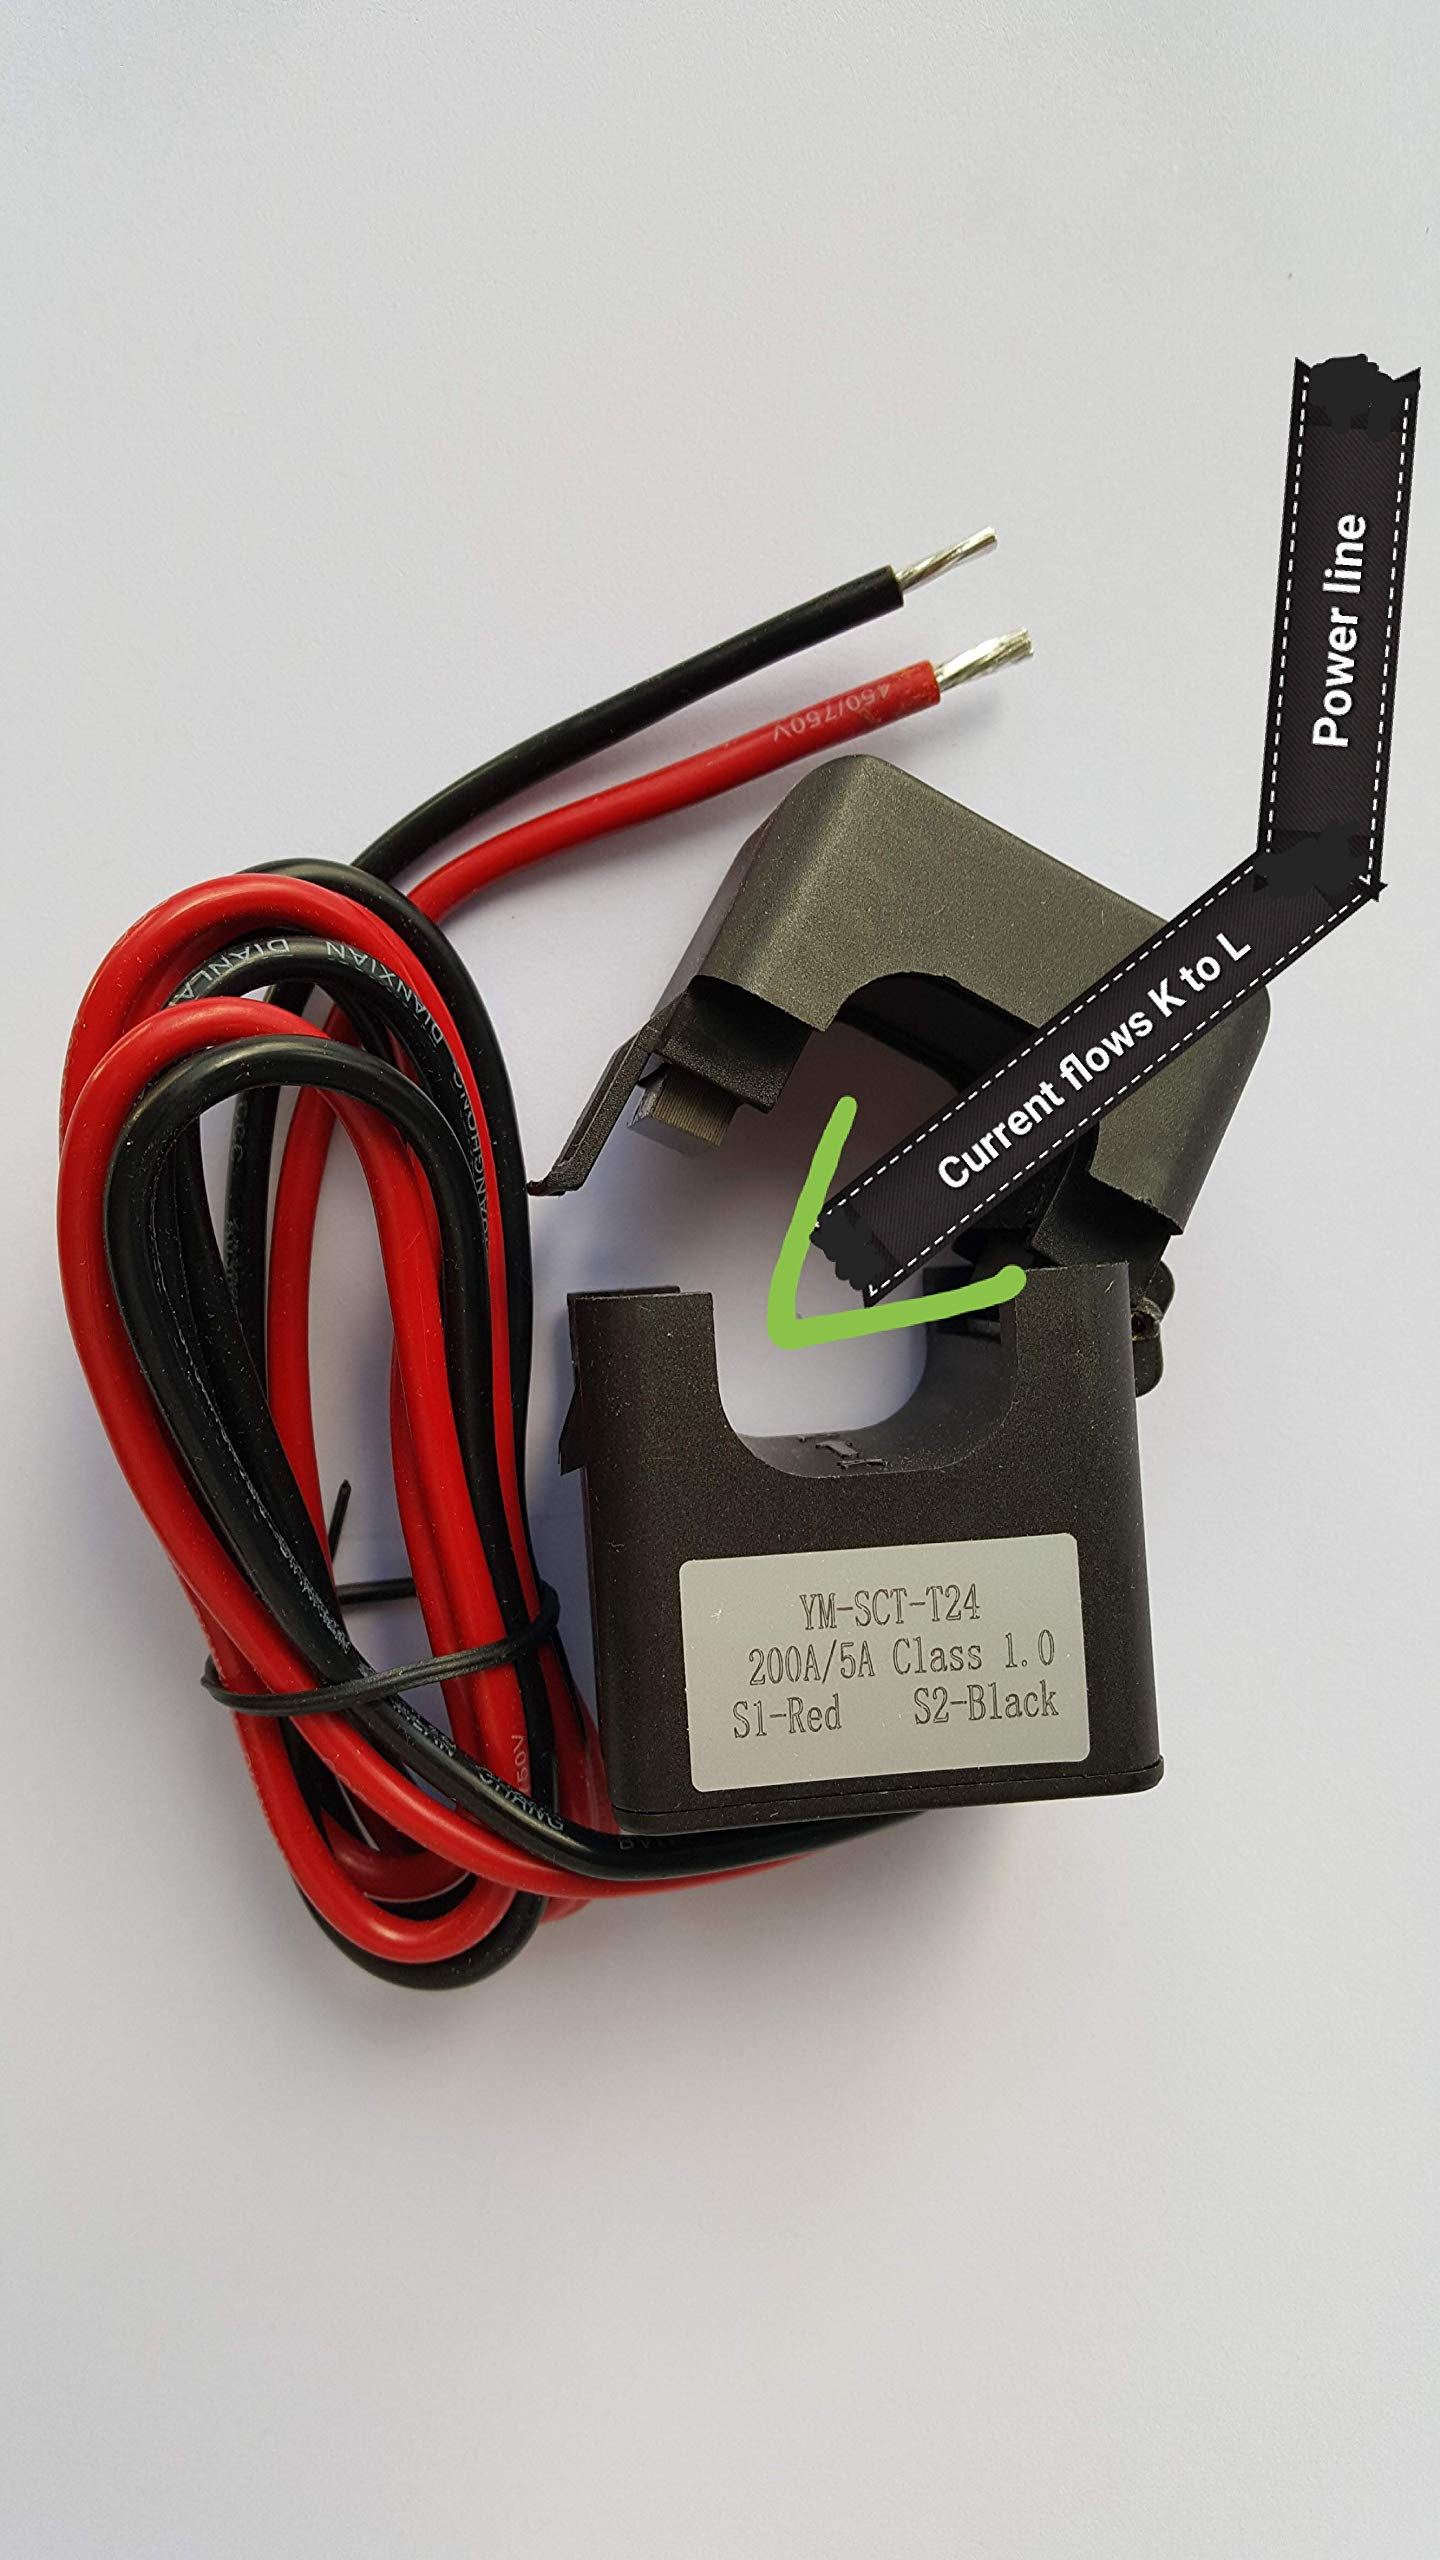 Smart energy meter 1 2 or 3 phase 120V/480V. 2x200:5 Amps included by BeyondTech.com (Image #9)